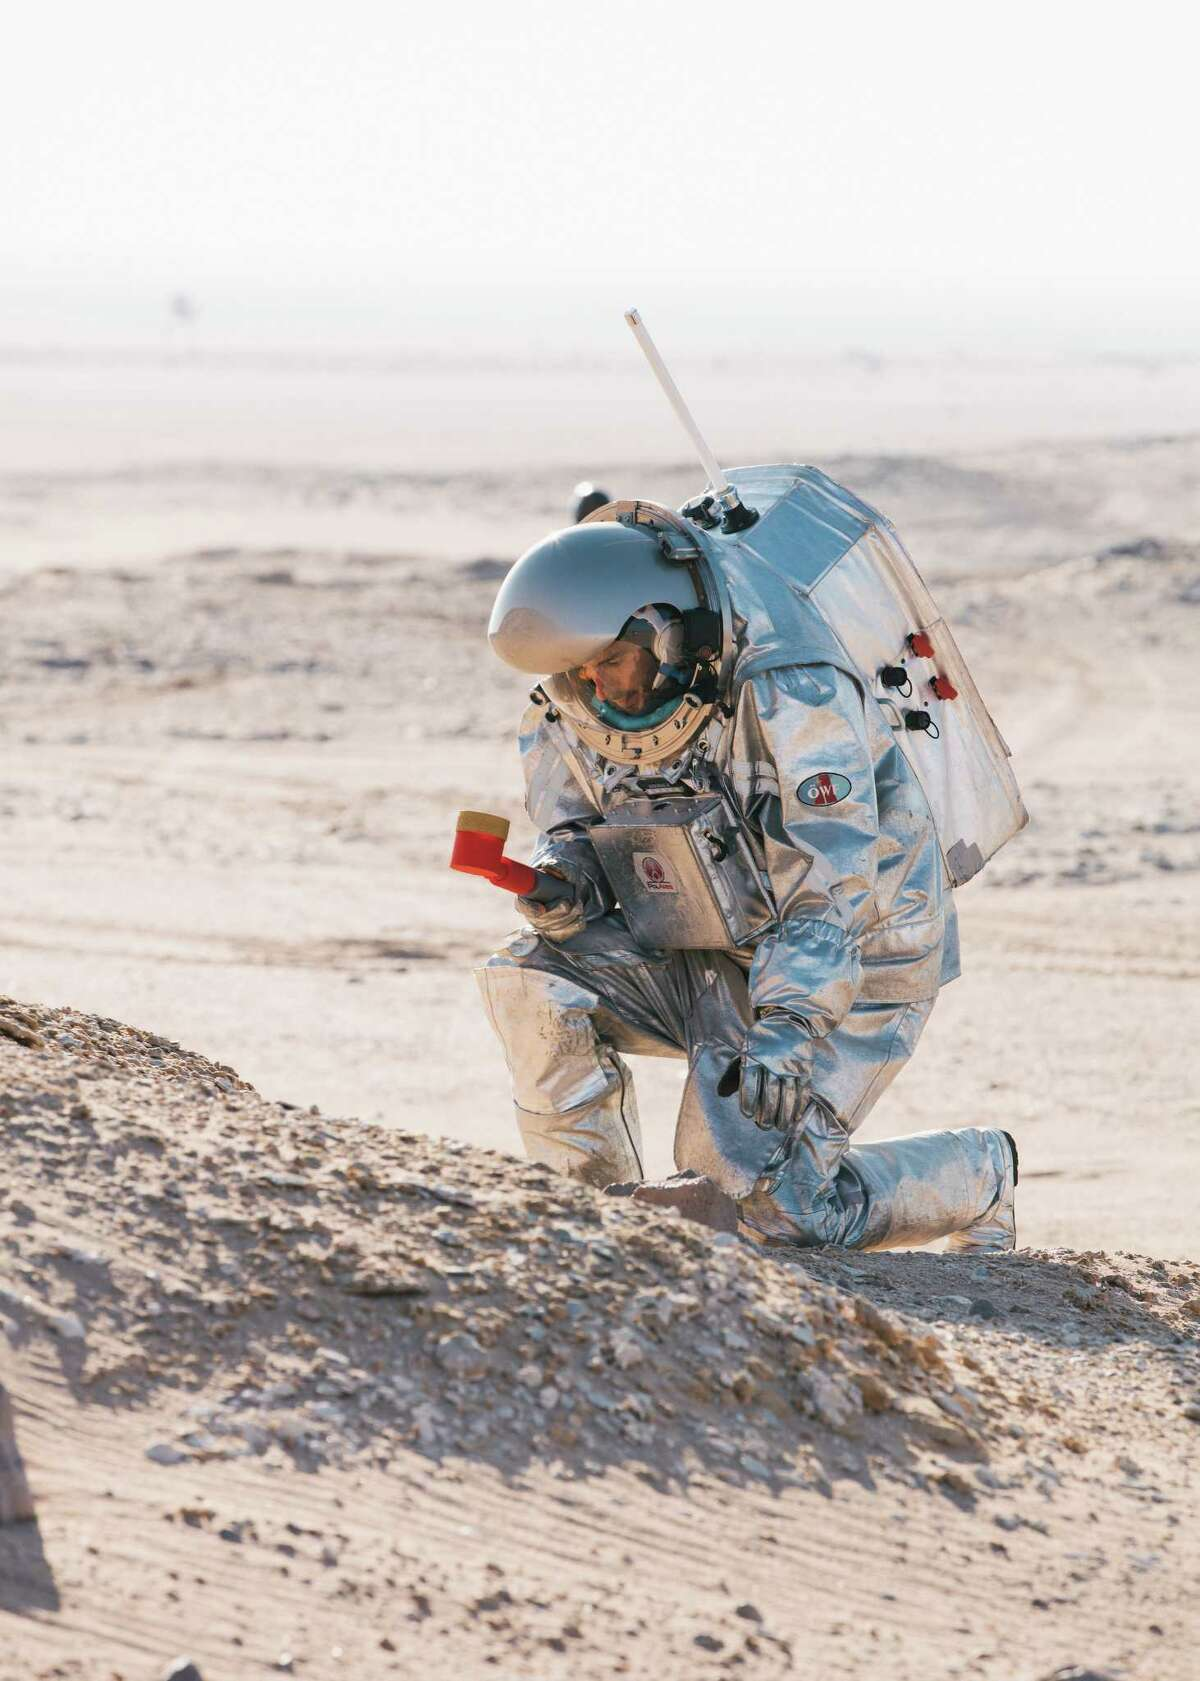 Analog astronaut Joao Lousada takes a geological sample using a 3D printed, modular, scoop as part of a scientific expedition outside the habitat.